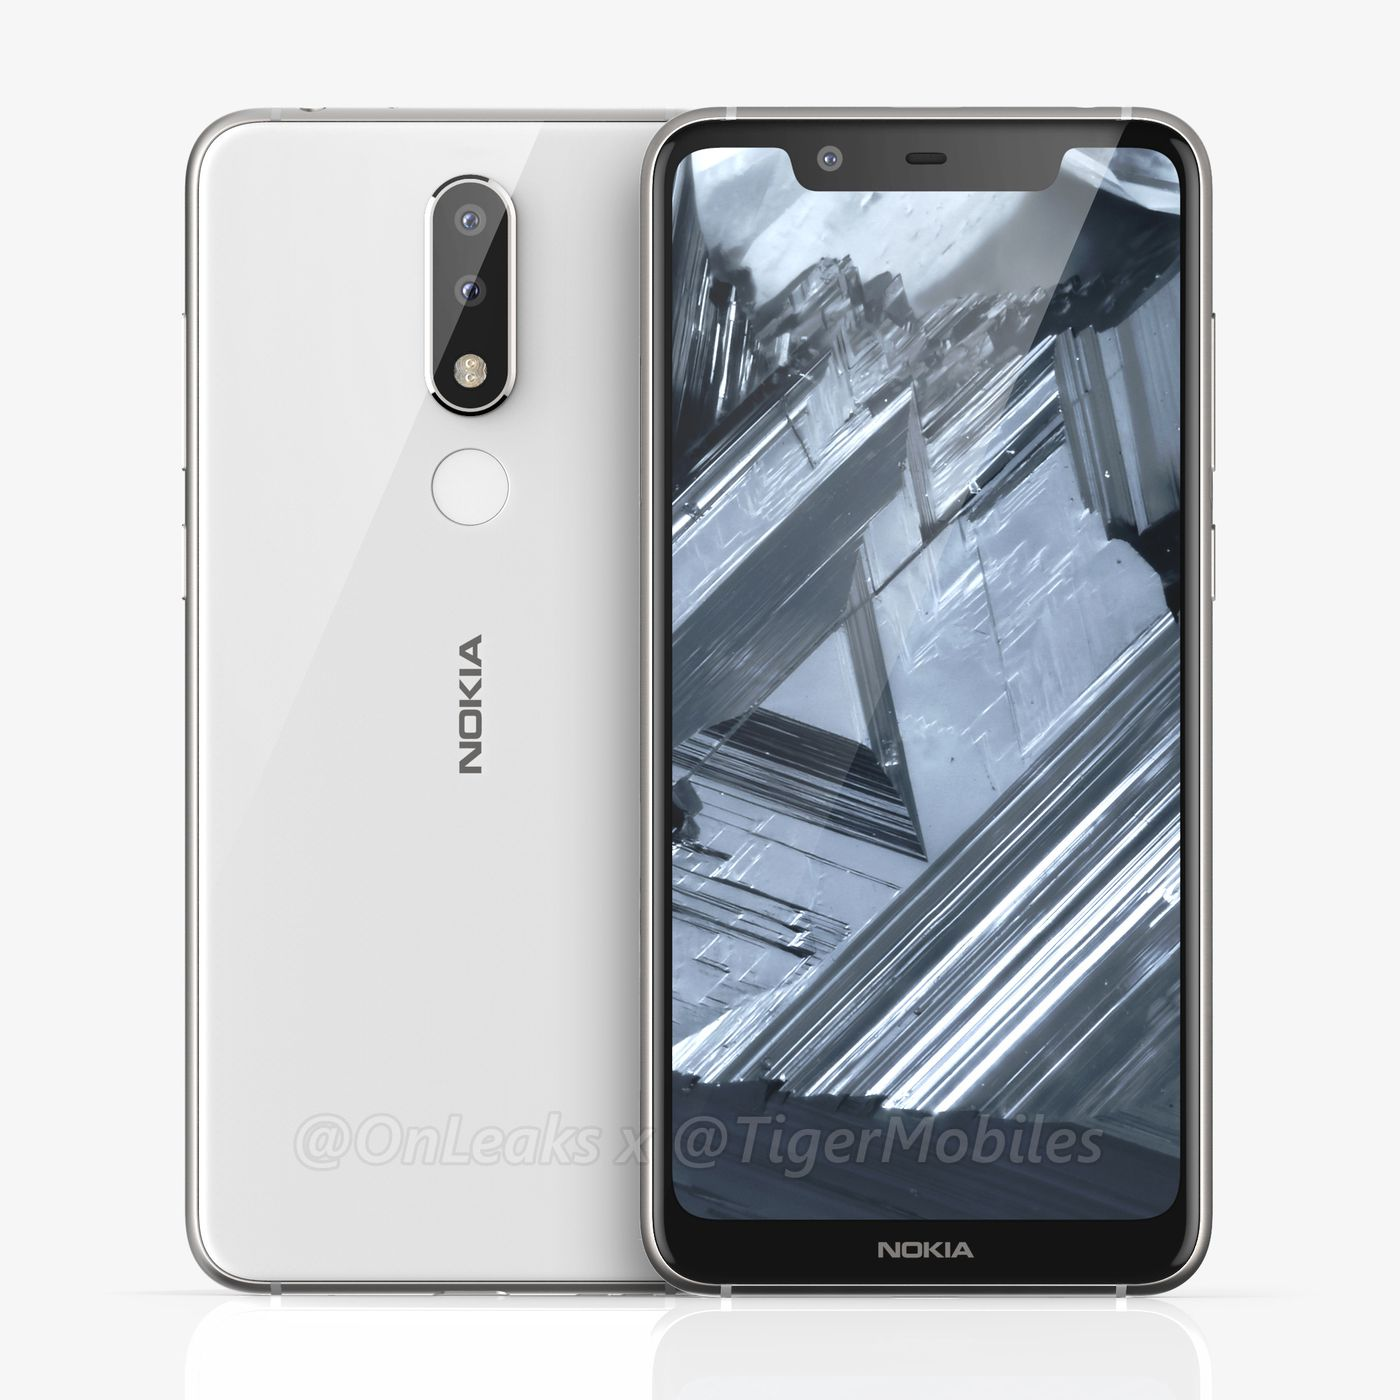 theverge.com - Shannon Liao - Leaked images reveal a notched Nokia 5.1 Plus with dual cameras